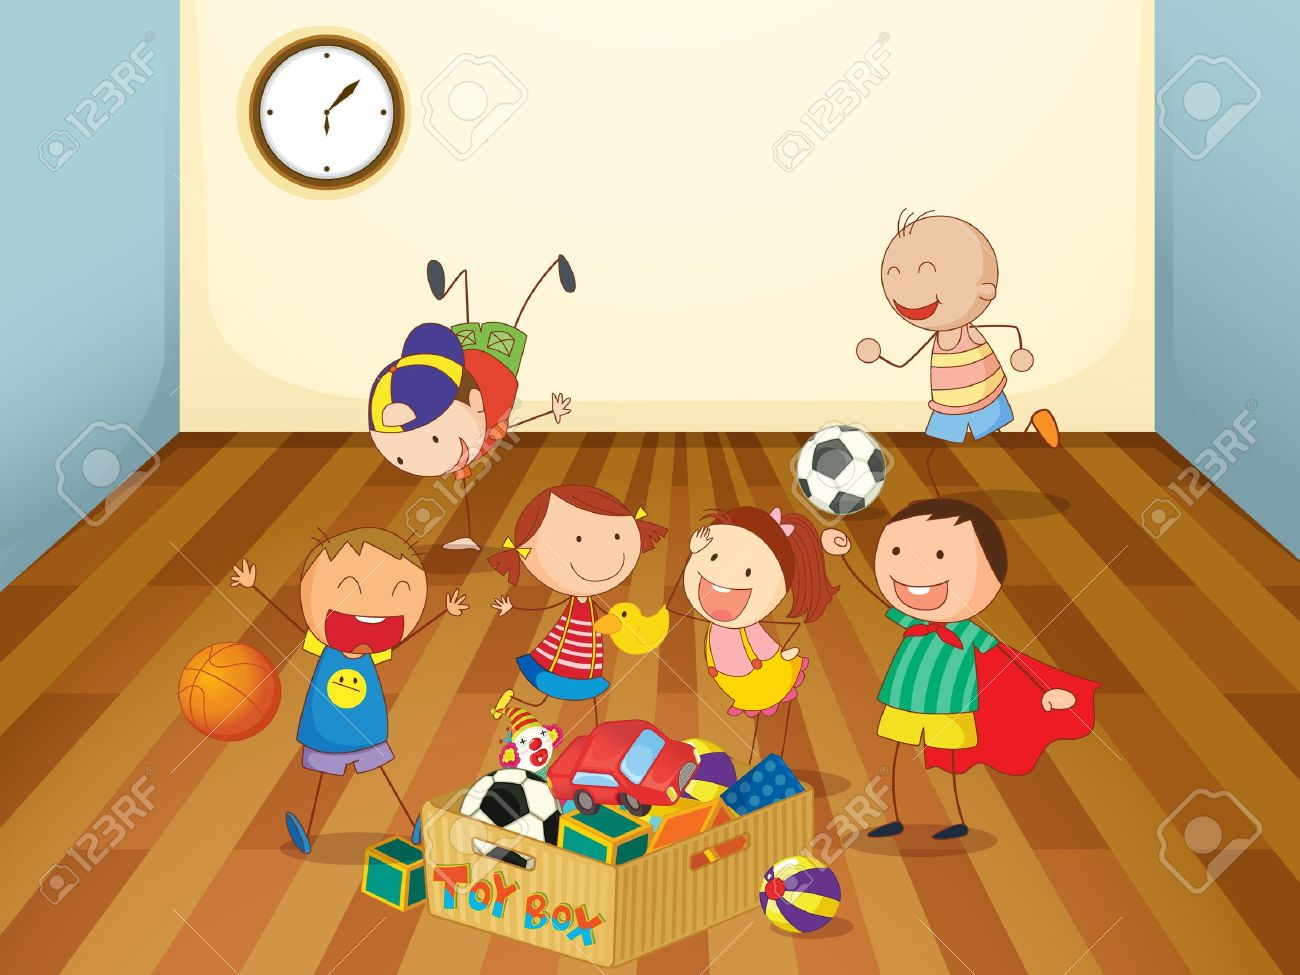 illustration of kids playing in a room Stock Vector - 14922912